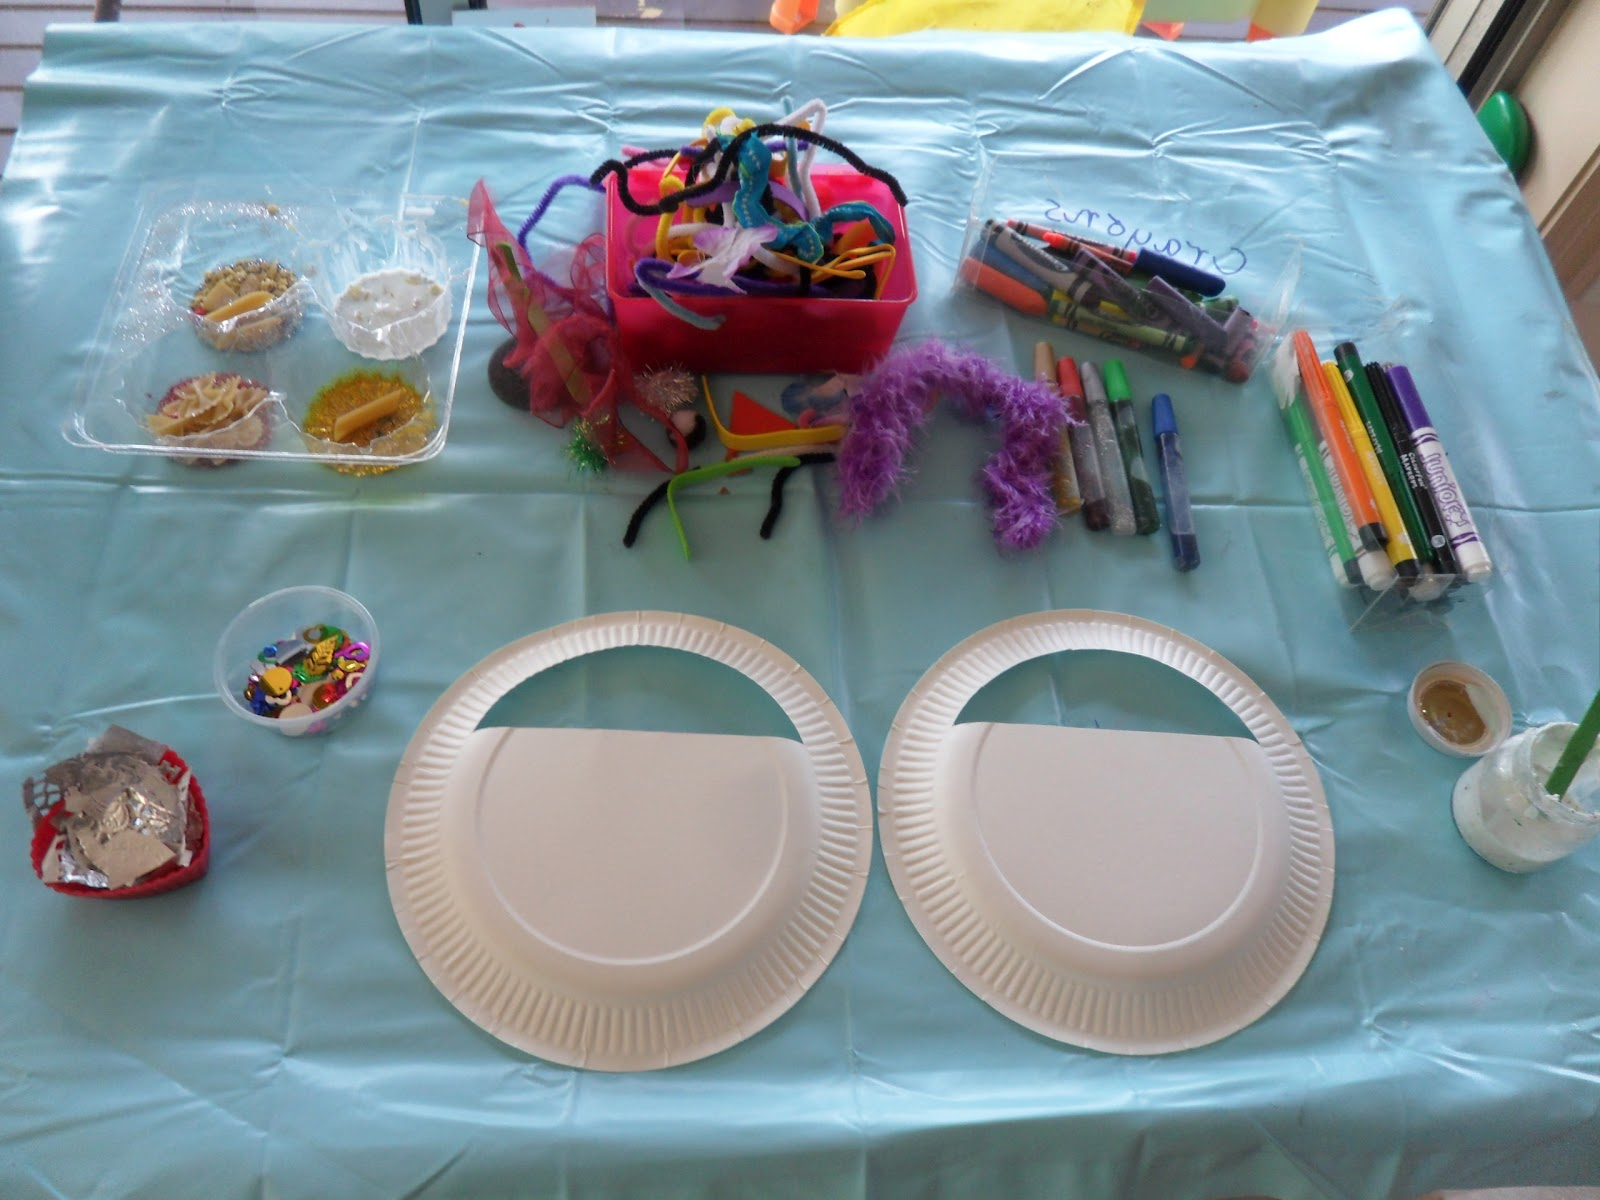 Feb 16 2012 & Learn with Play at Home: Paper plate bag